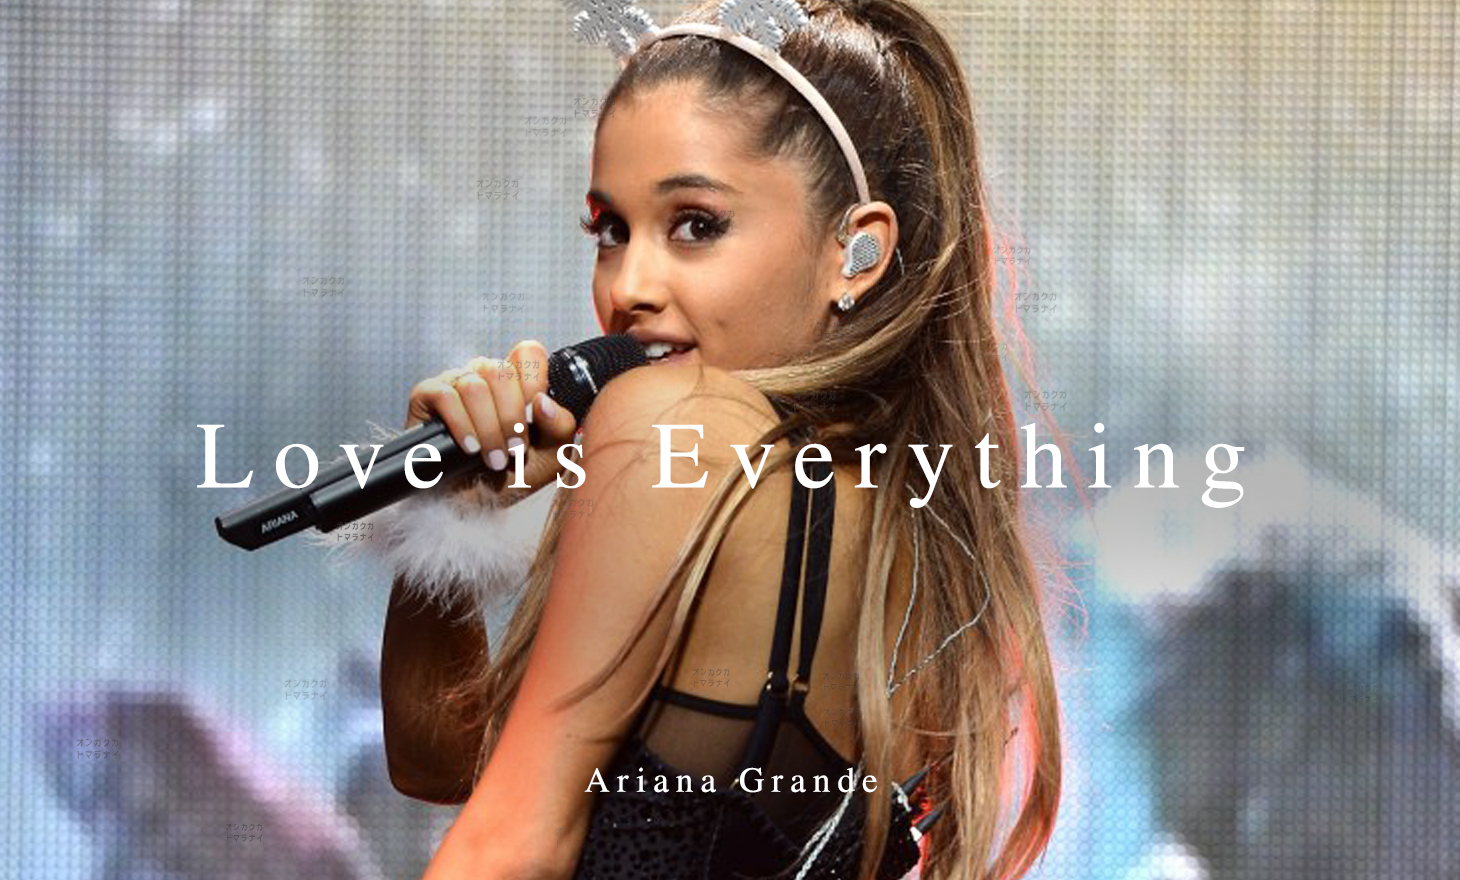 Ariana Grande : Love is Everything